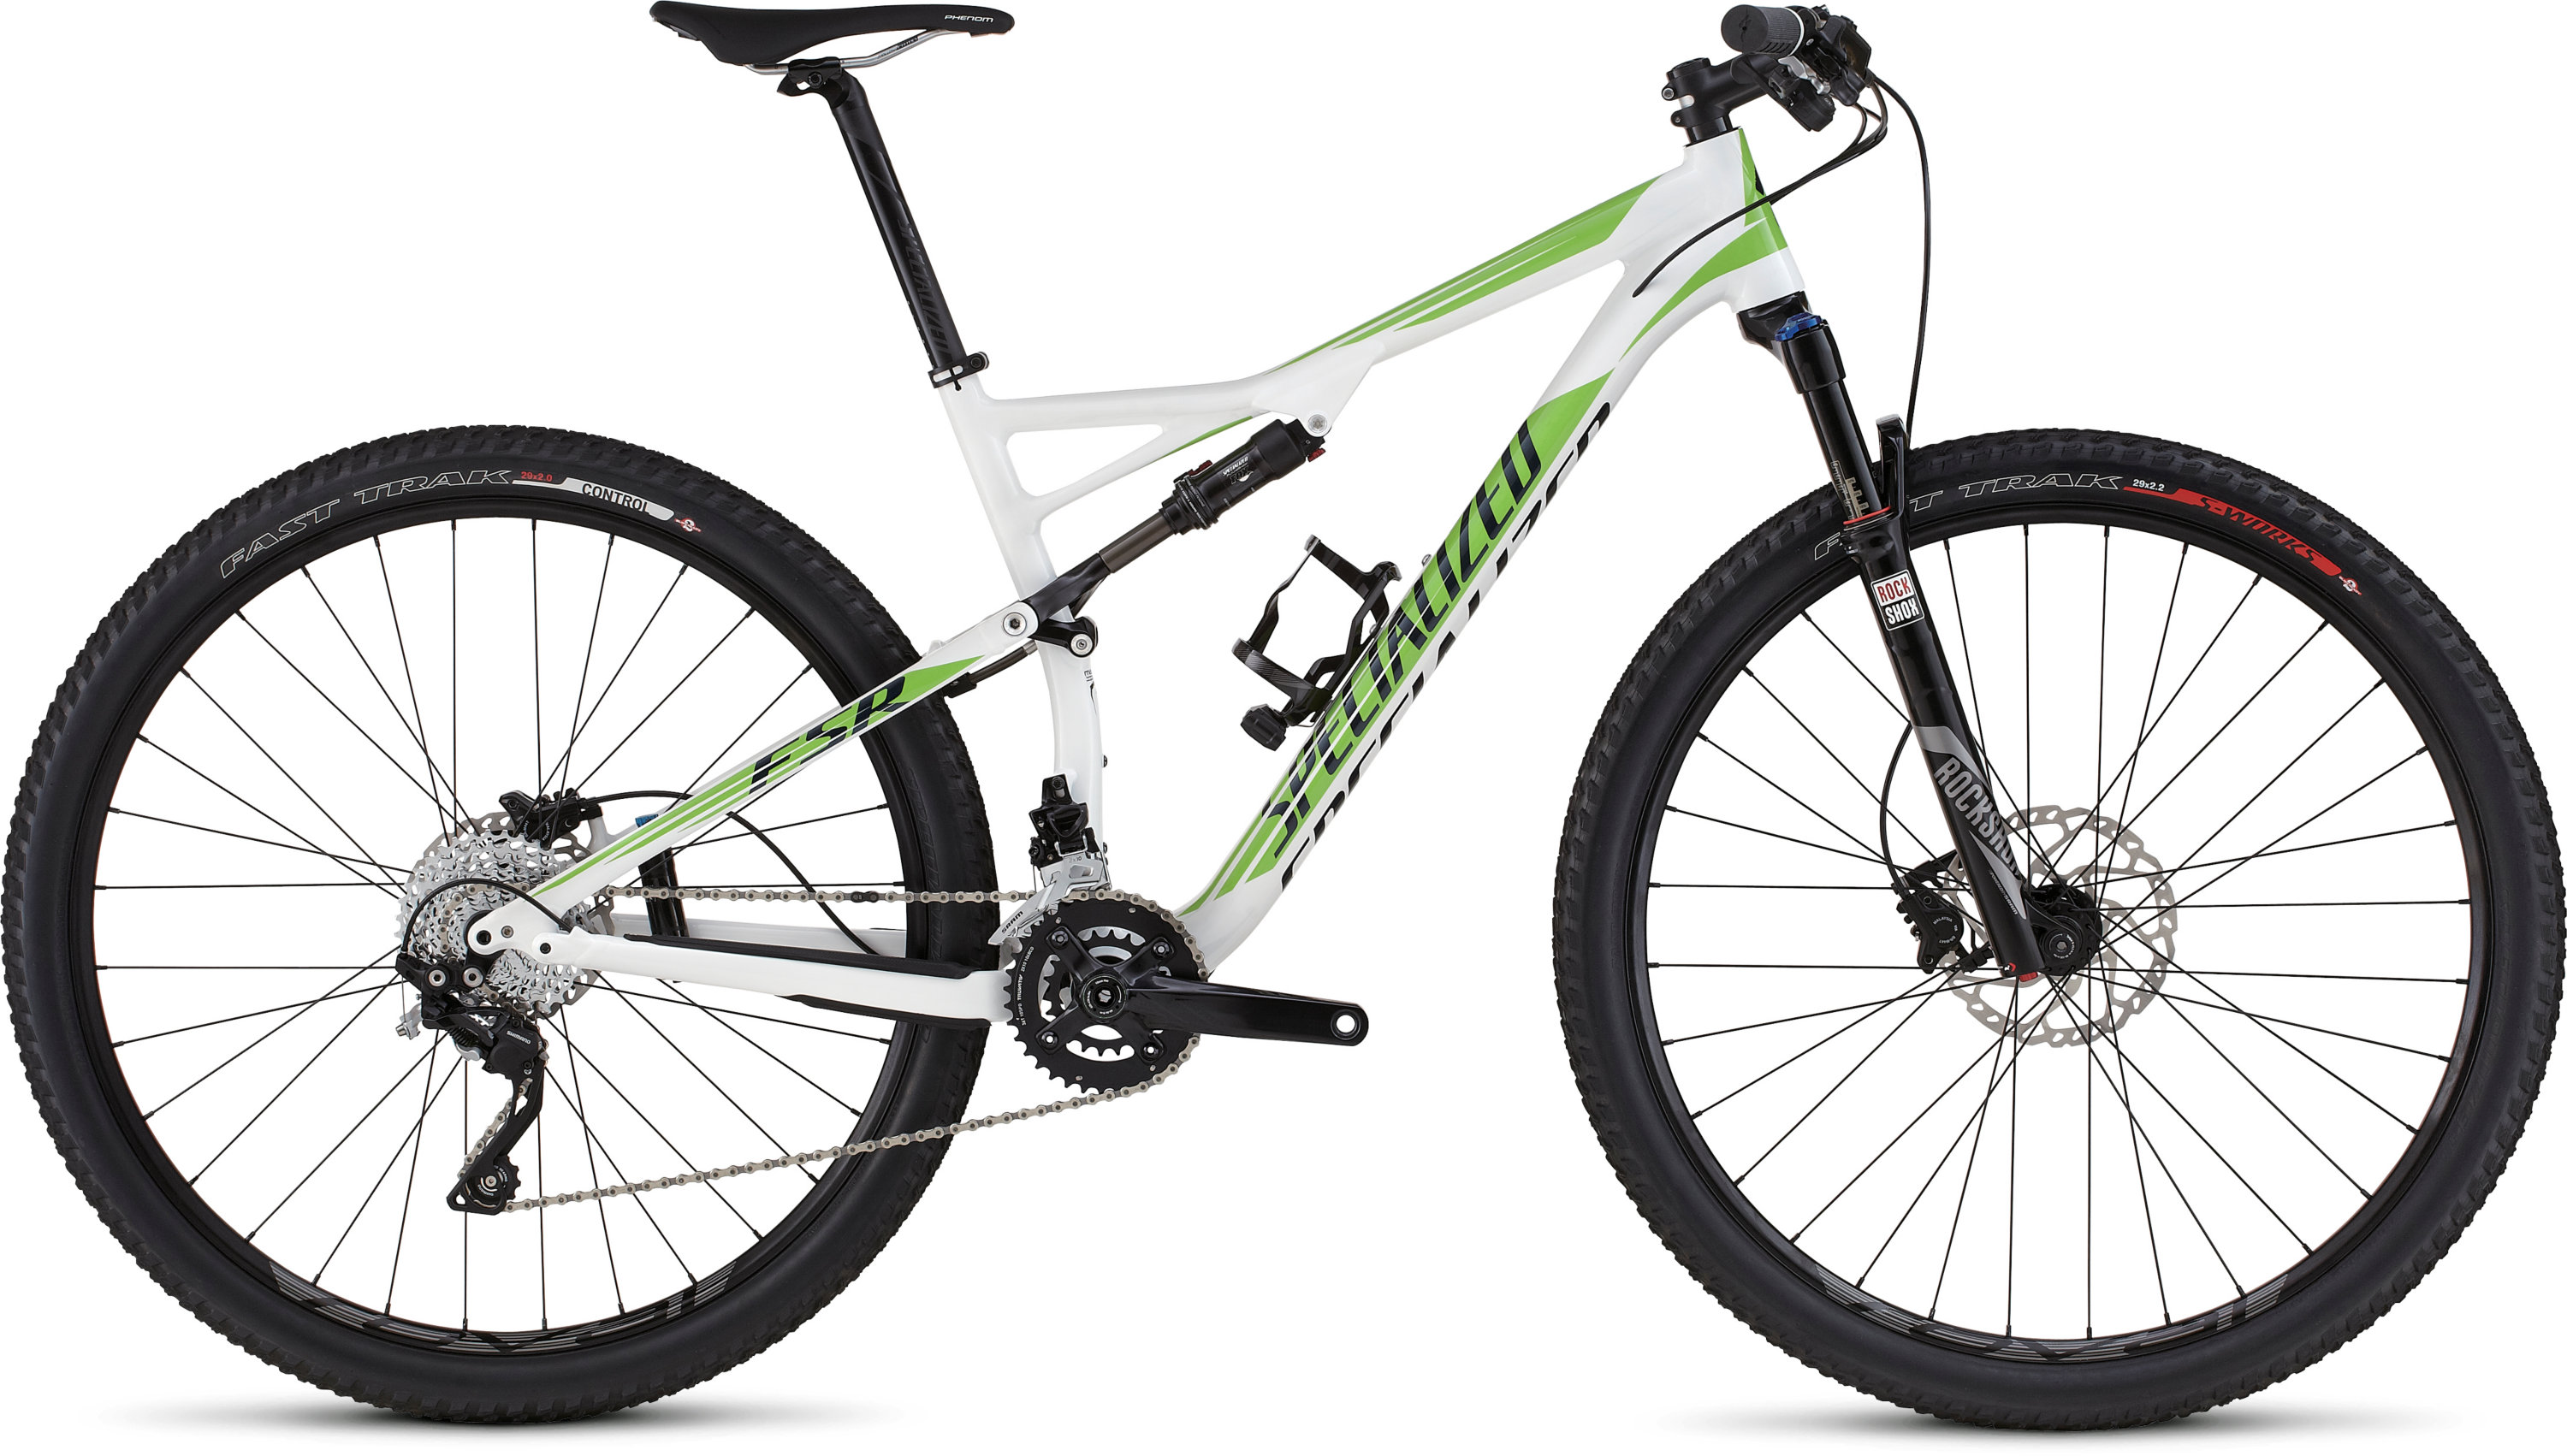 SPECIALIZED EPIC FSR COMP 29 WHT/MONGRN/NVY L - SPECIALIZED EPIC FSR COMP 29 WHT/MONGRN/NVY L